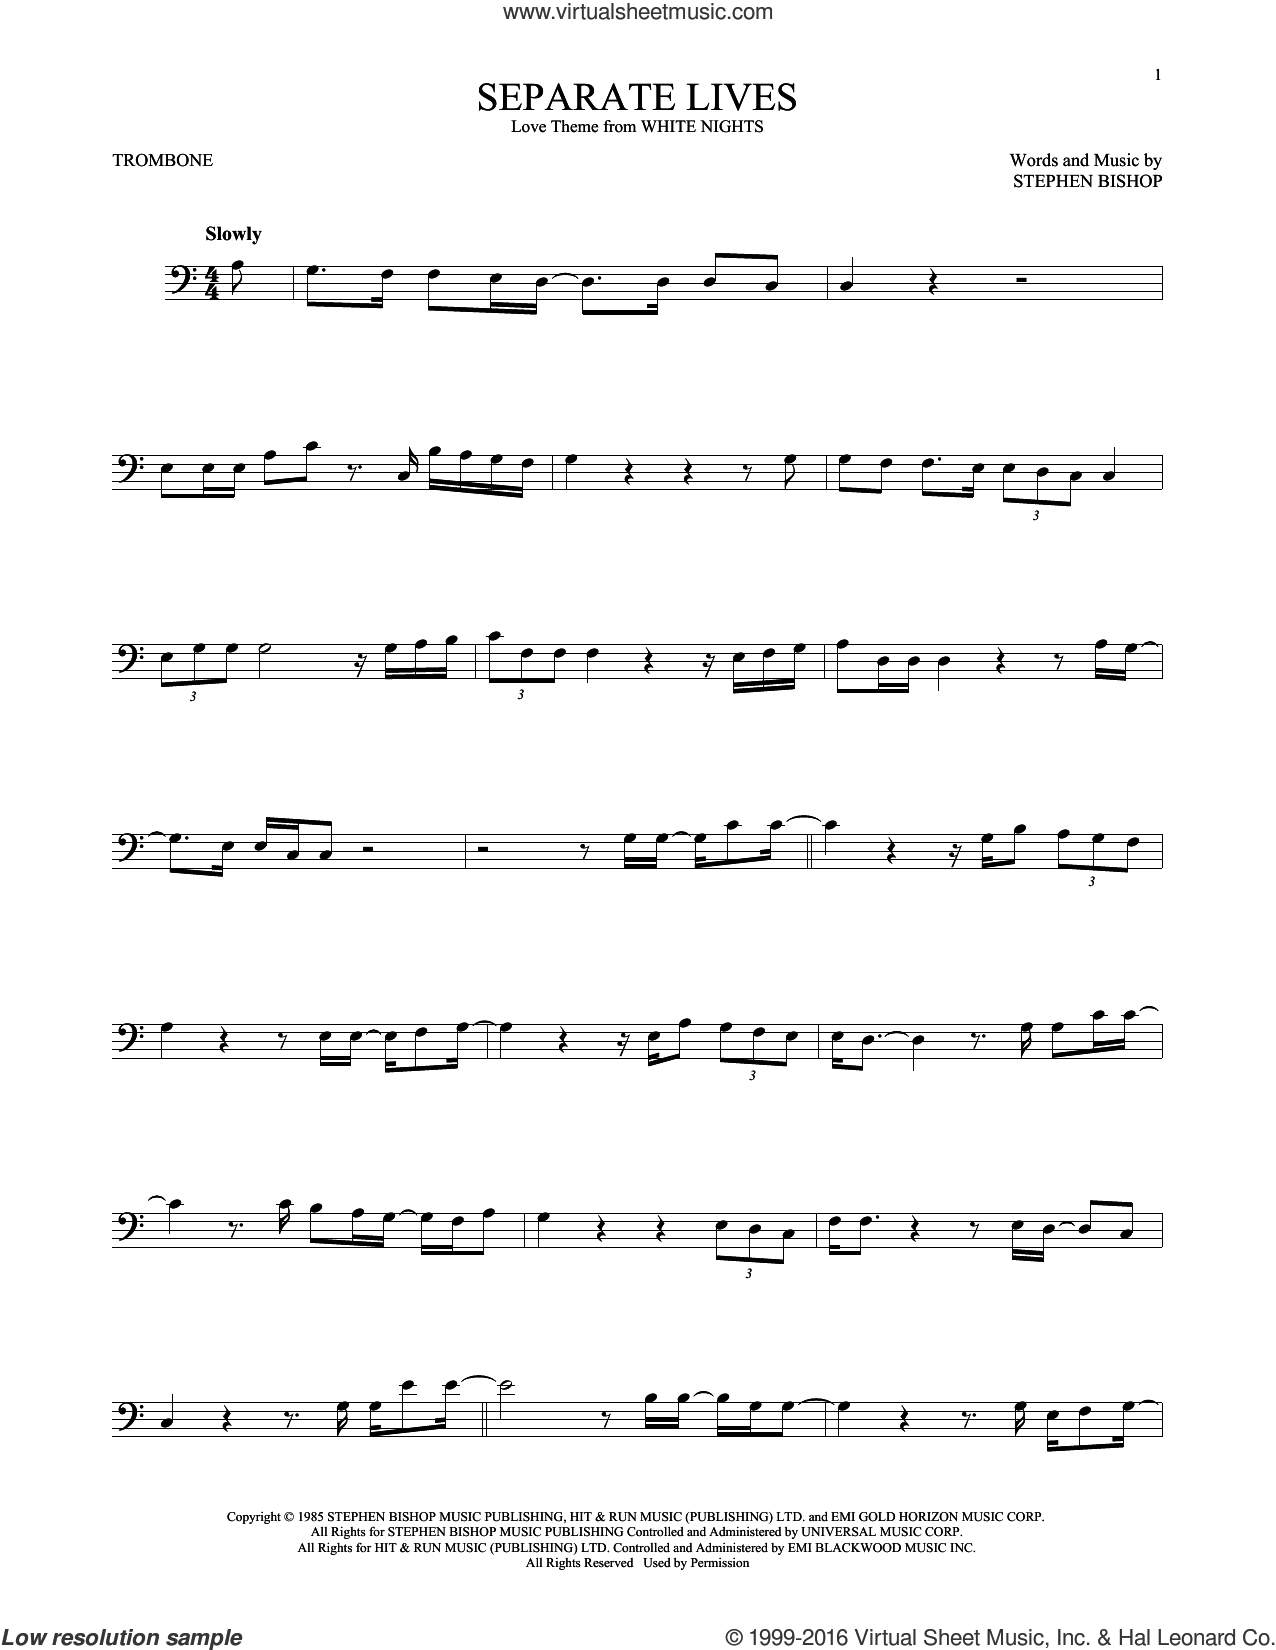 Separate Lives sheet music for trombone solo by Phil Collins & Marilyn Martin and Stephen Bishop, intermediate skill level